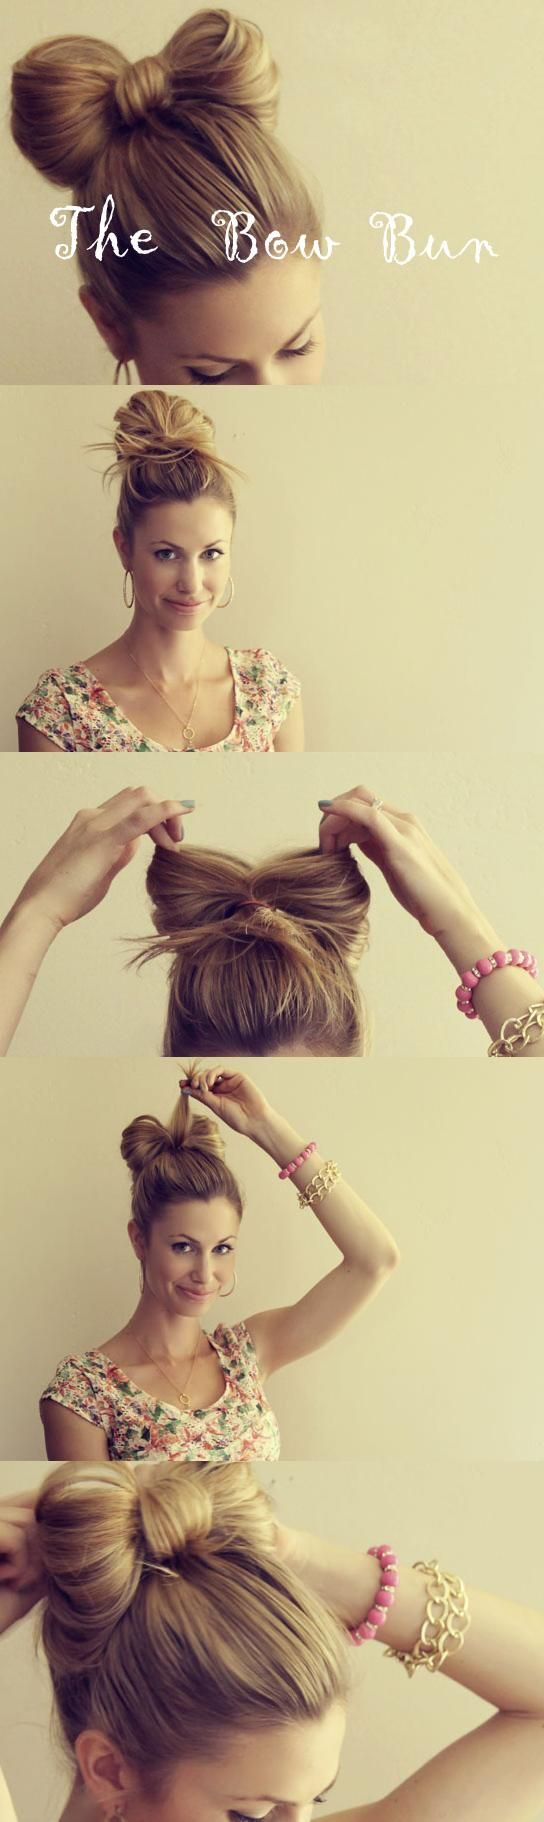 latest party hairstyles tutorial step by step 2018-2019